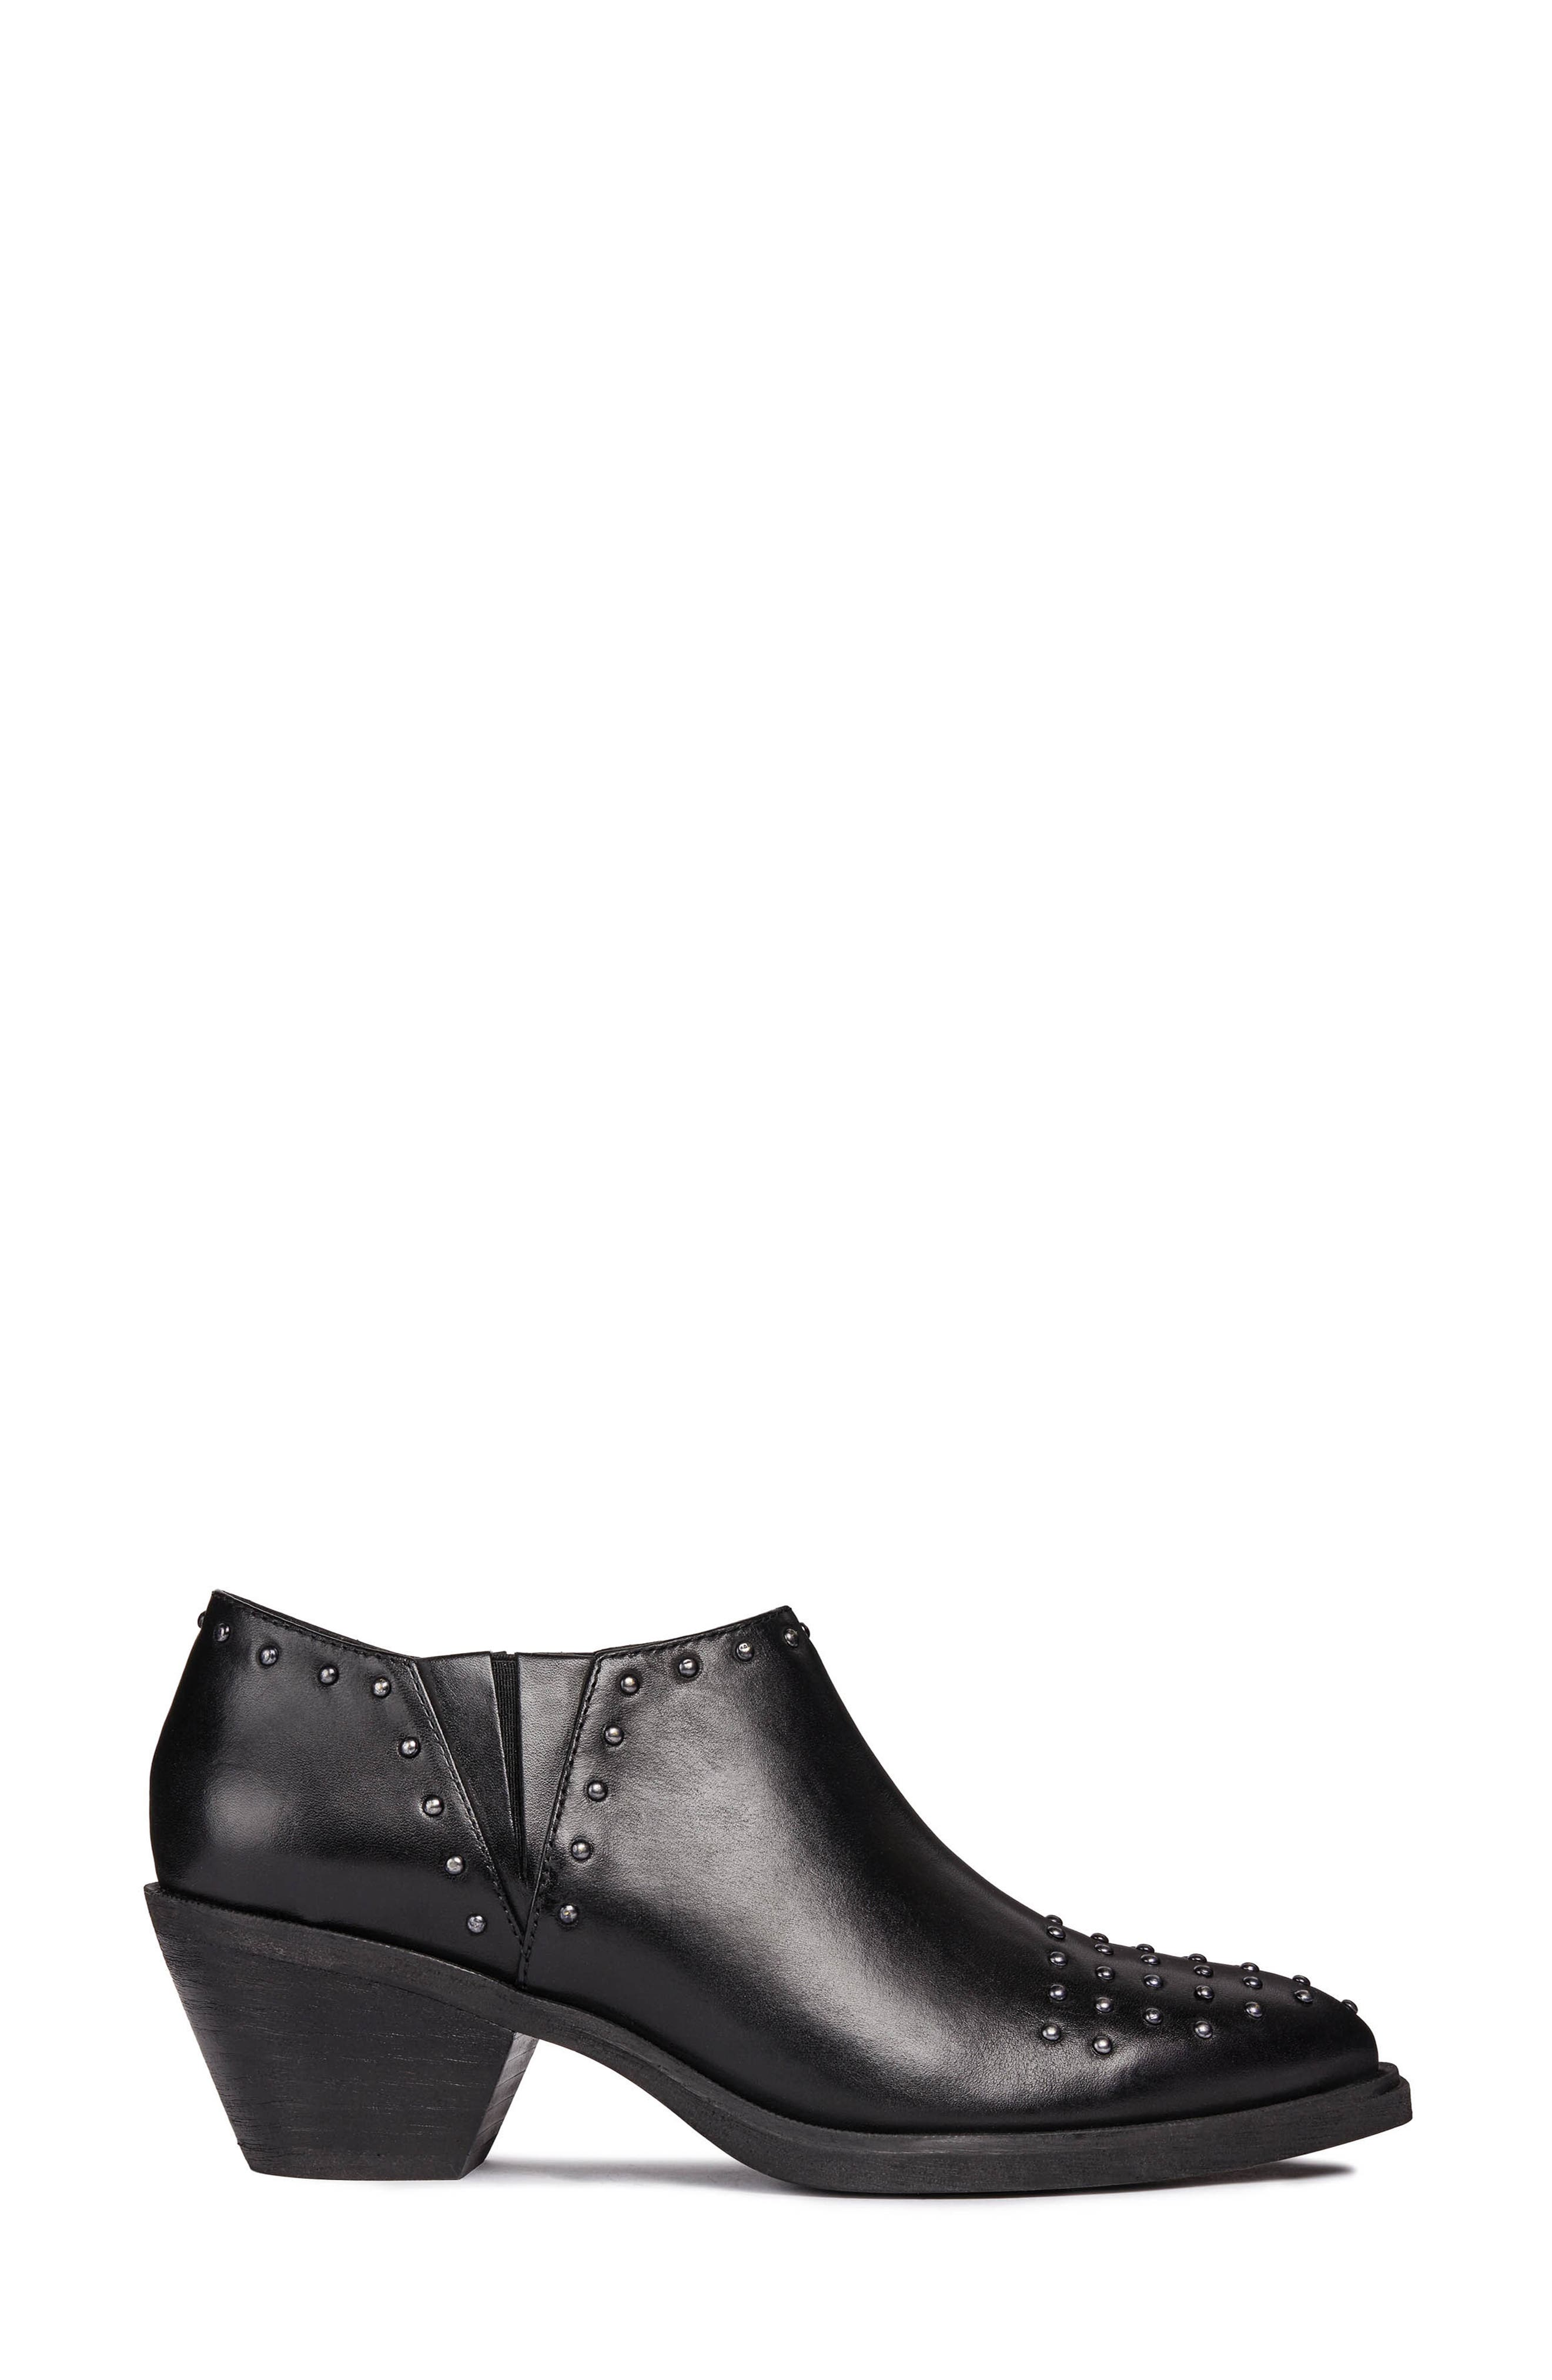 GEOX, Lovai Ankle Boot, Alternate thumbnail 3, color, BLACK LEATHER